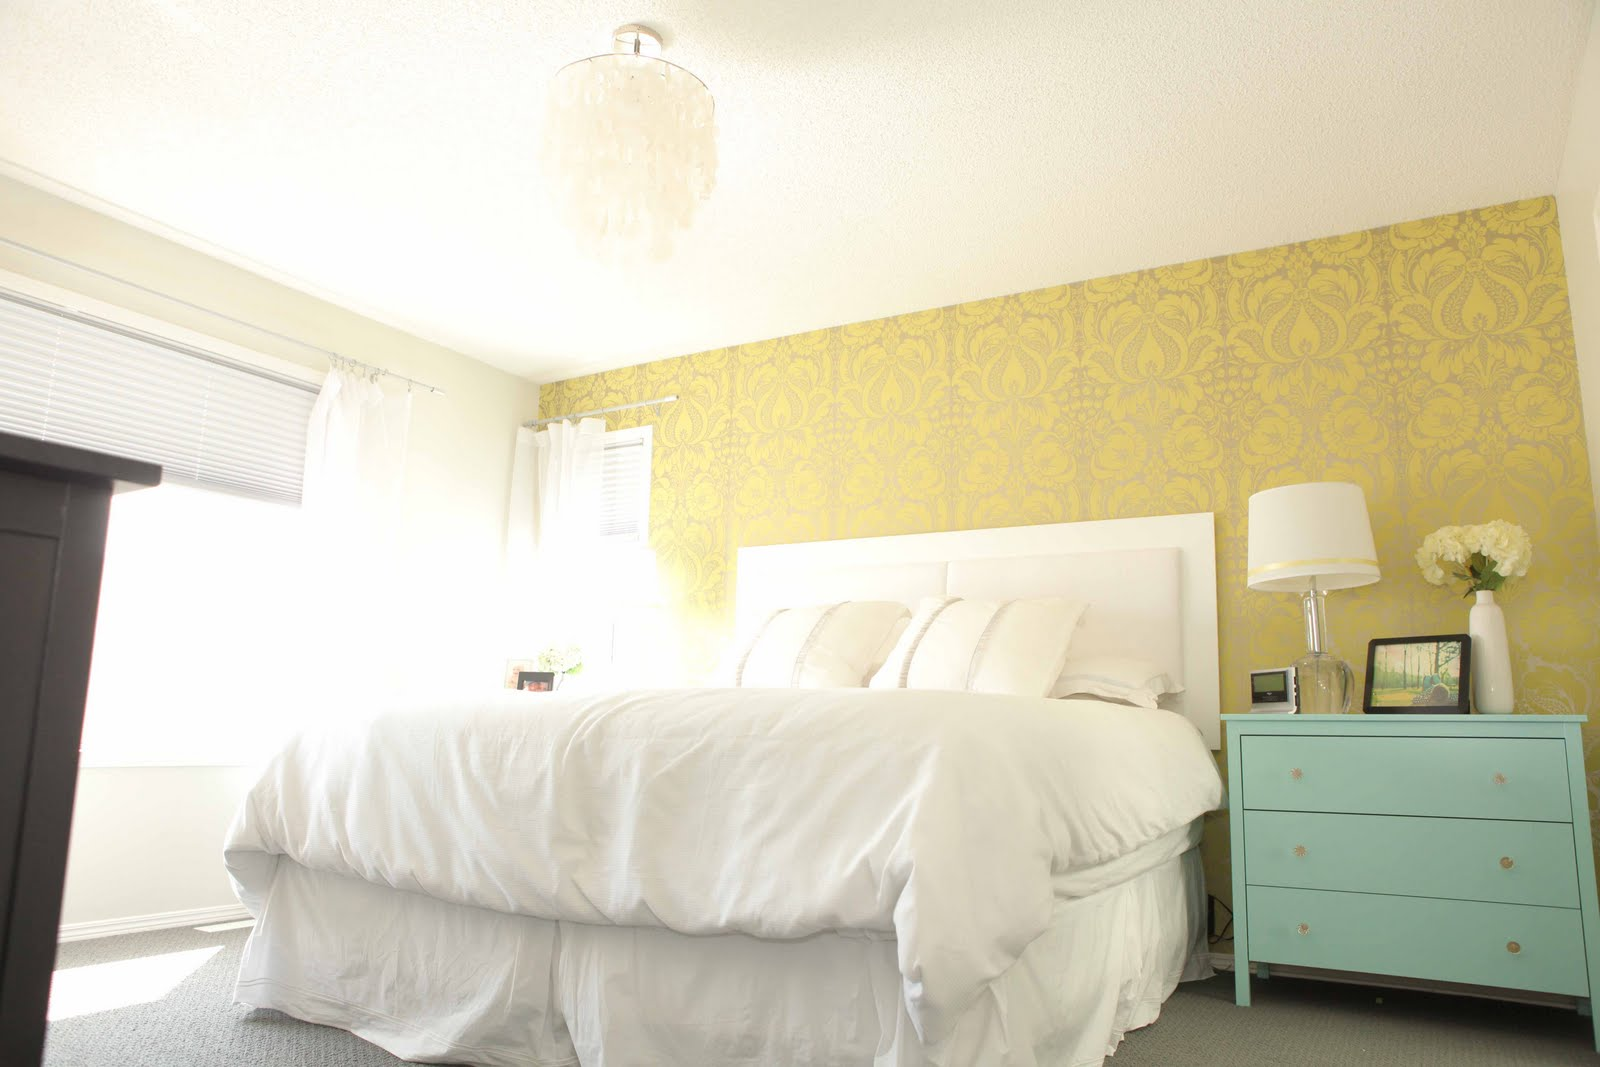 Beach House In The City Room Tour Master Bedroom And Tiffany Blue